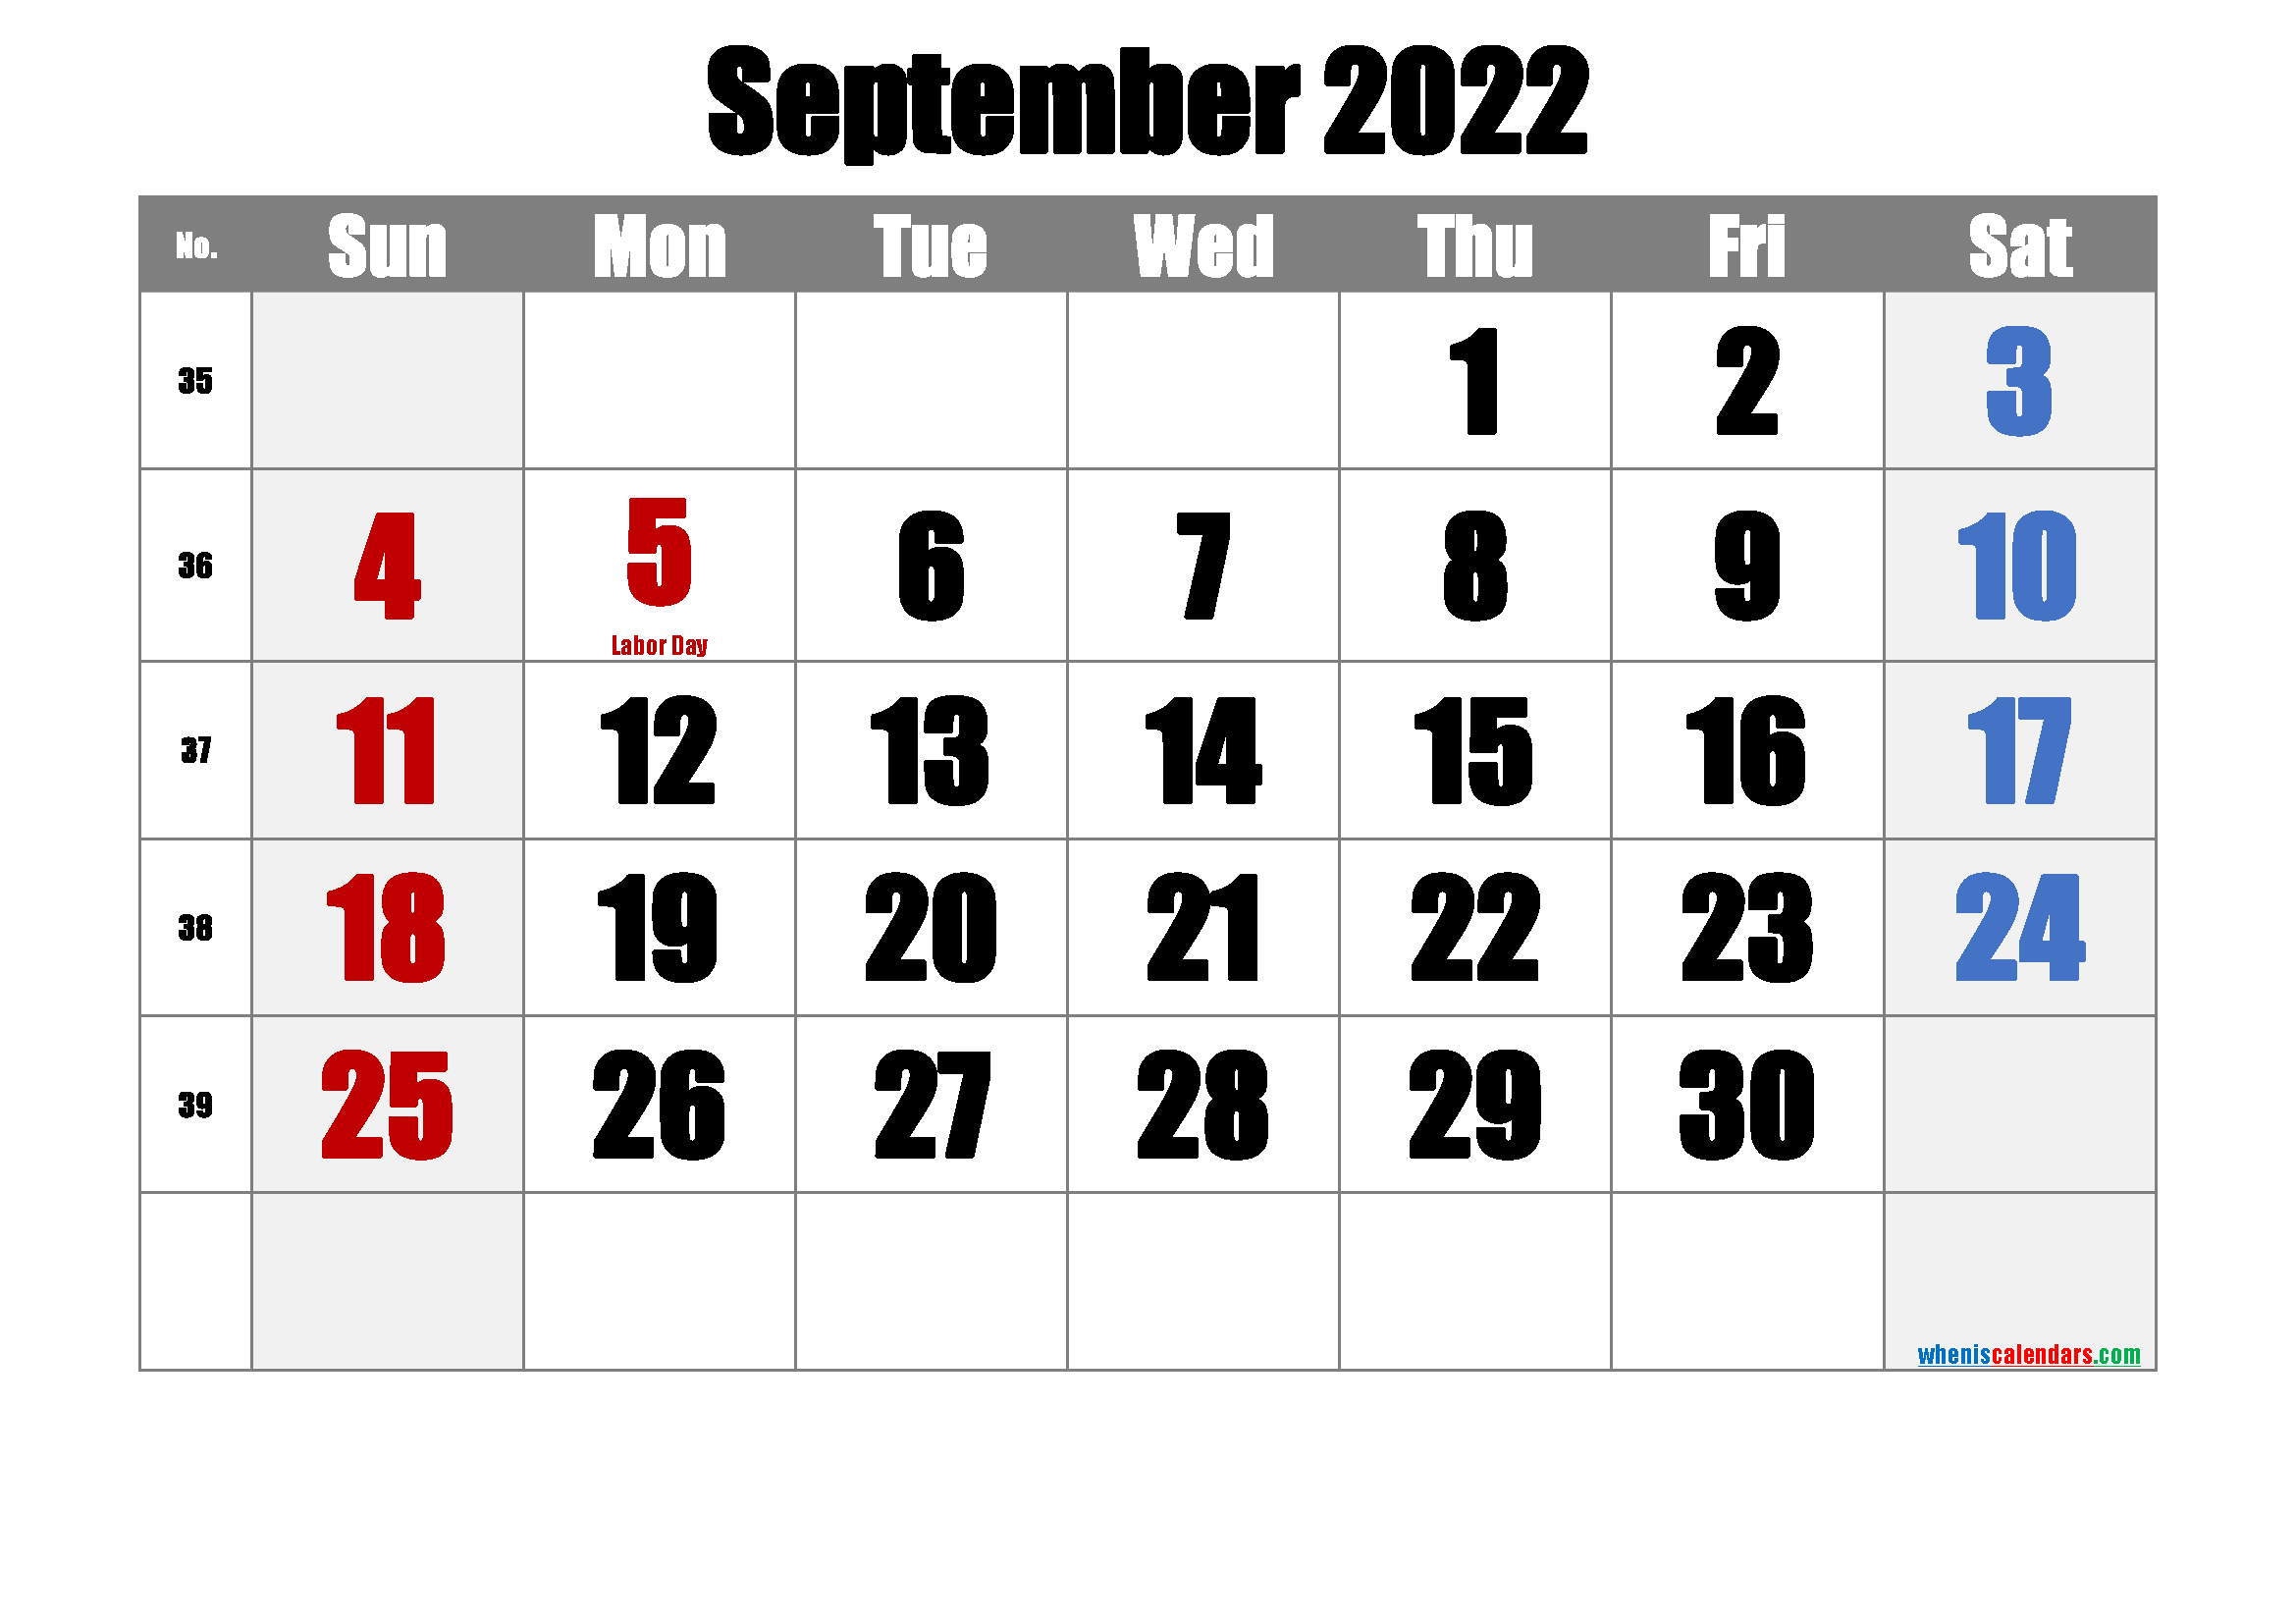 SEPTEMBER 2022 Printable Calendar with Holidays